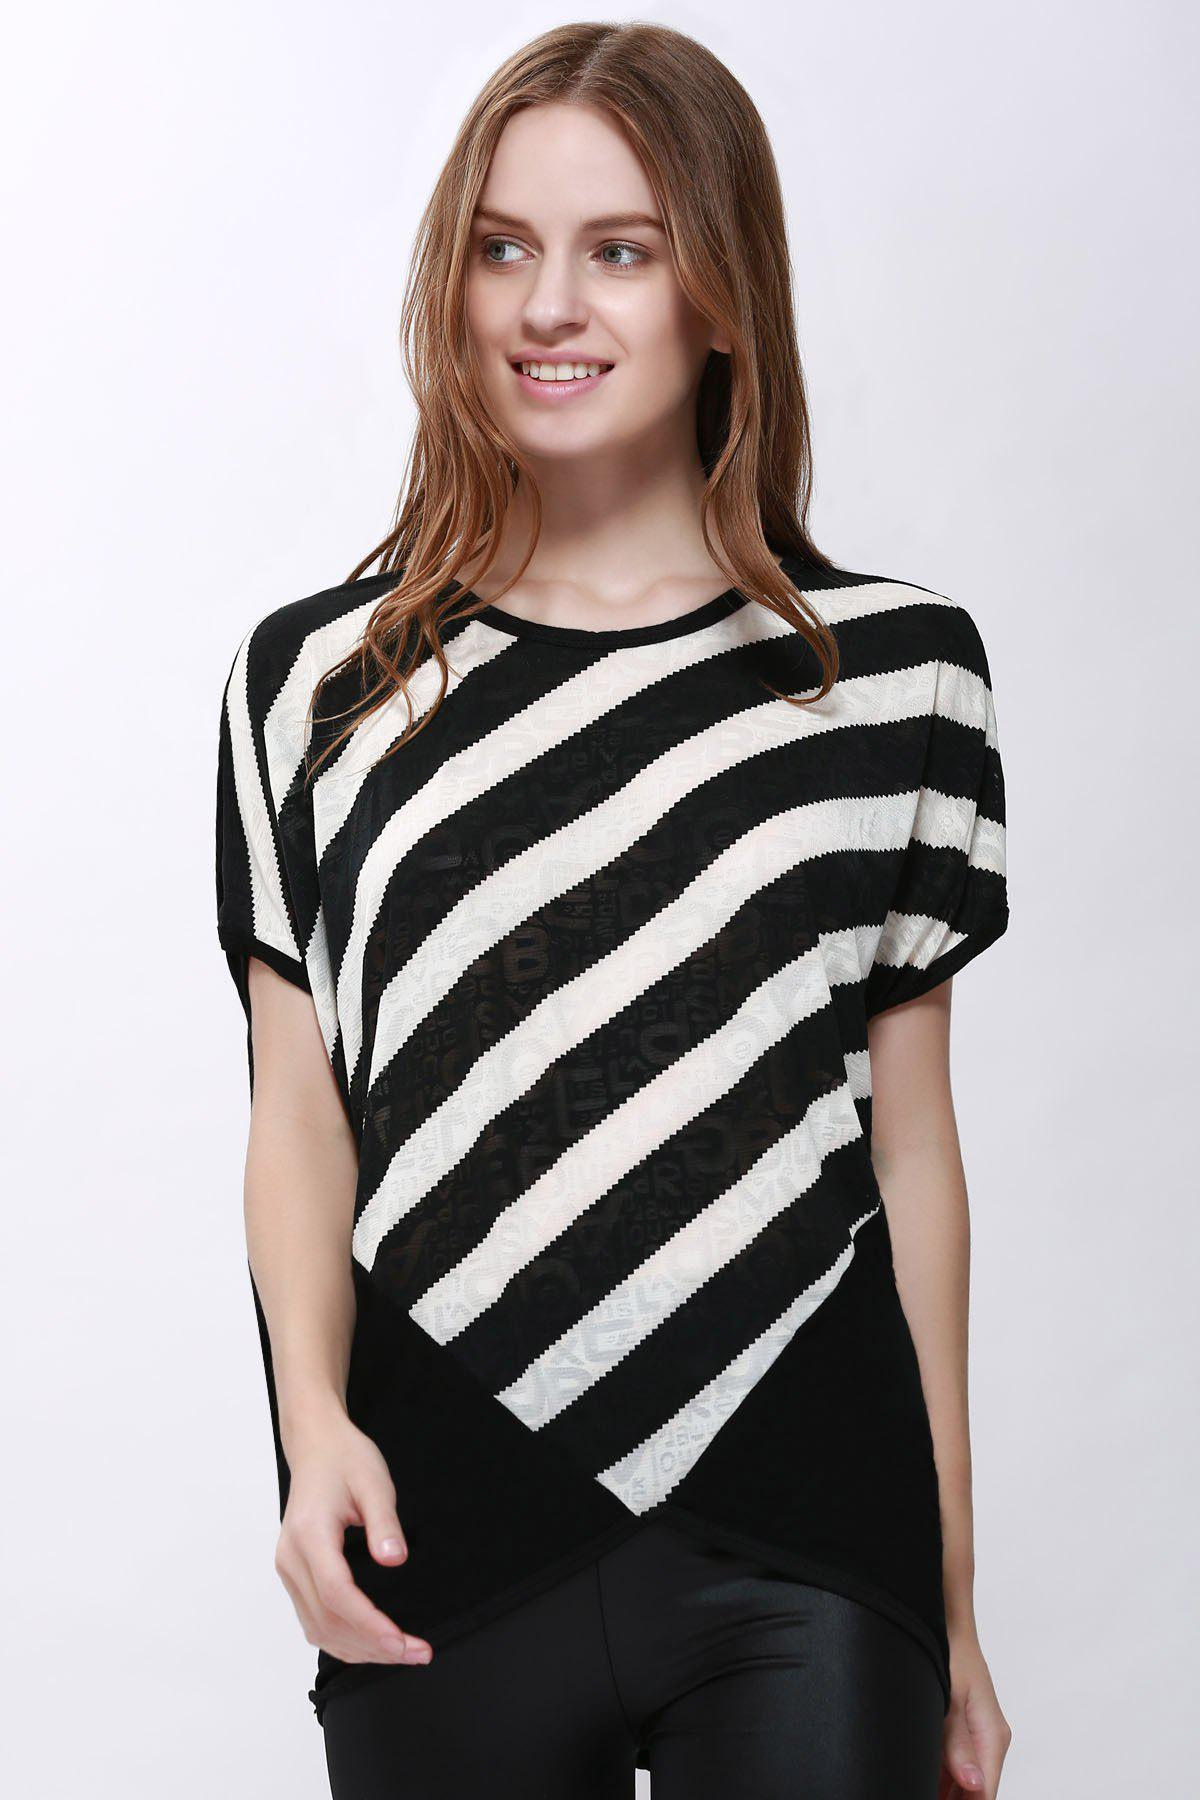 Scoop Neck Sloping Stripe Print Batwing Sleeve Womens Summer BlouseWOMEN<br><br>Size: XL; Color: BLACK; Style: Casual; Material: Polyester; Shirt Length: Regular; Sleeve Length: Short; Collar: Scoop Neck; Pattern Type: Striped; Weight: 0.189kg; Package Contents: 1 x Blouse;